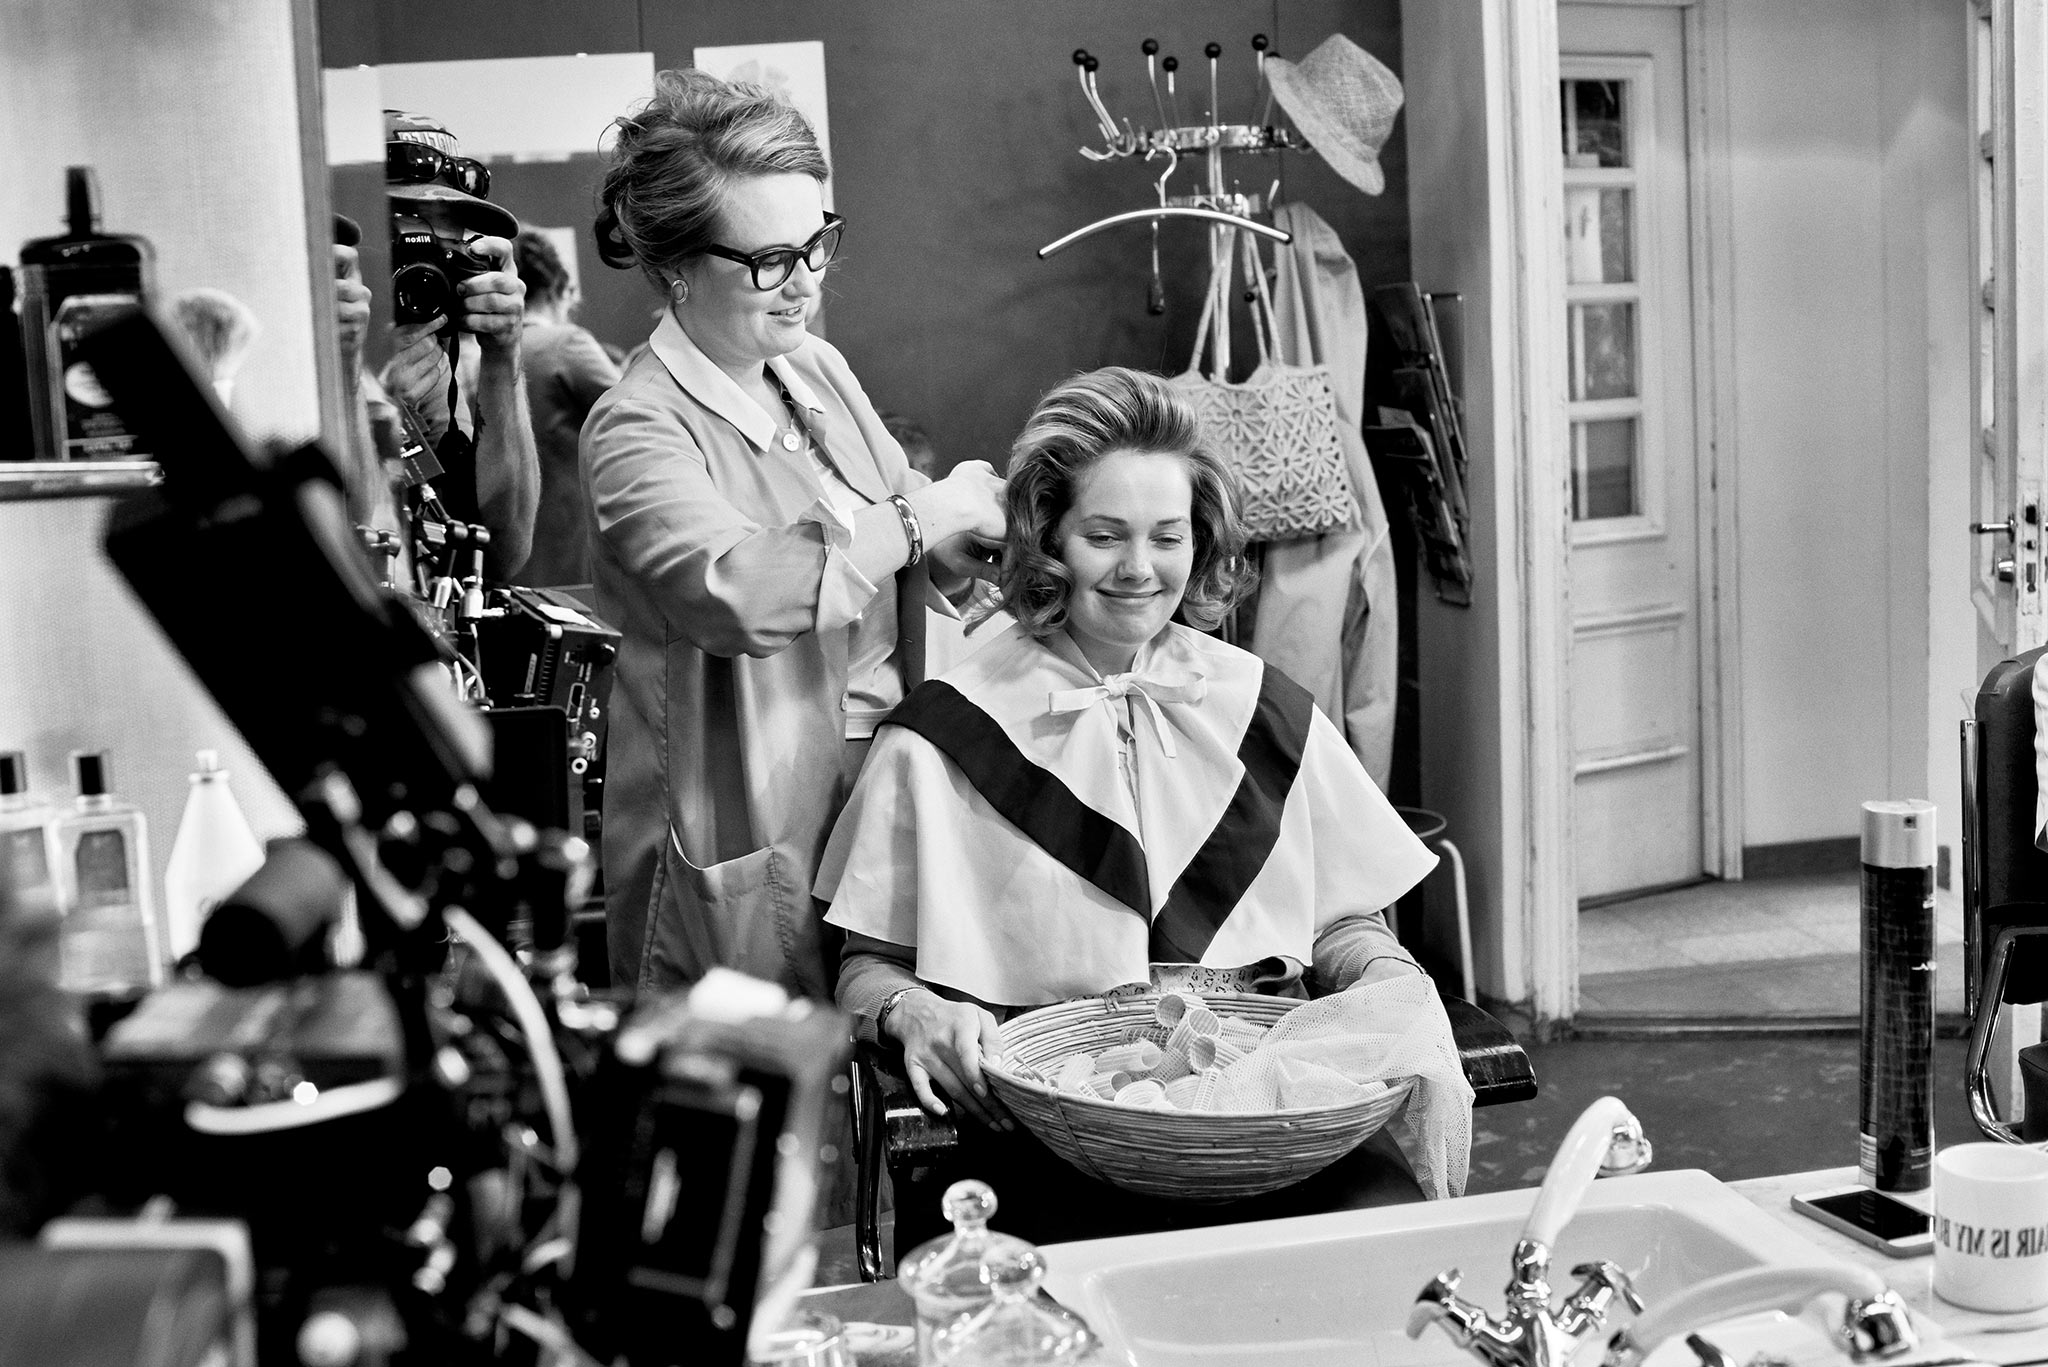 I also got to play a small cameo role as a hairdresser in the film which was great fun.  Photo by Sami Kuokkanen